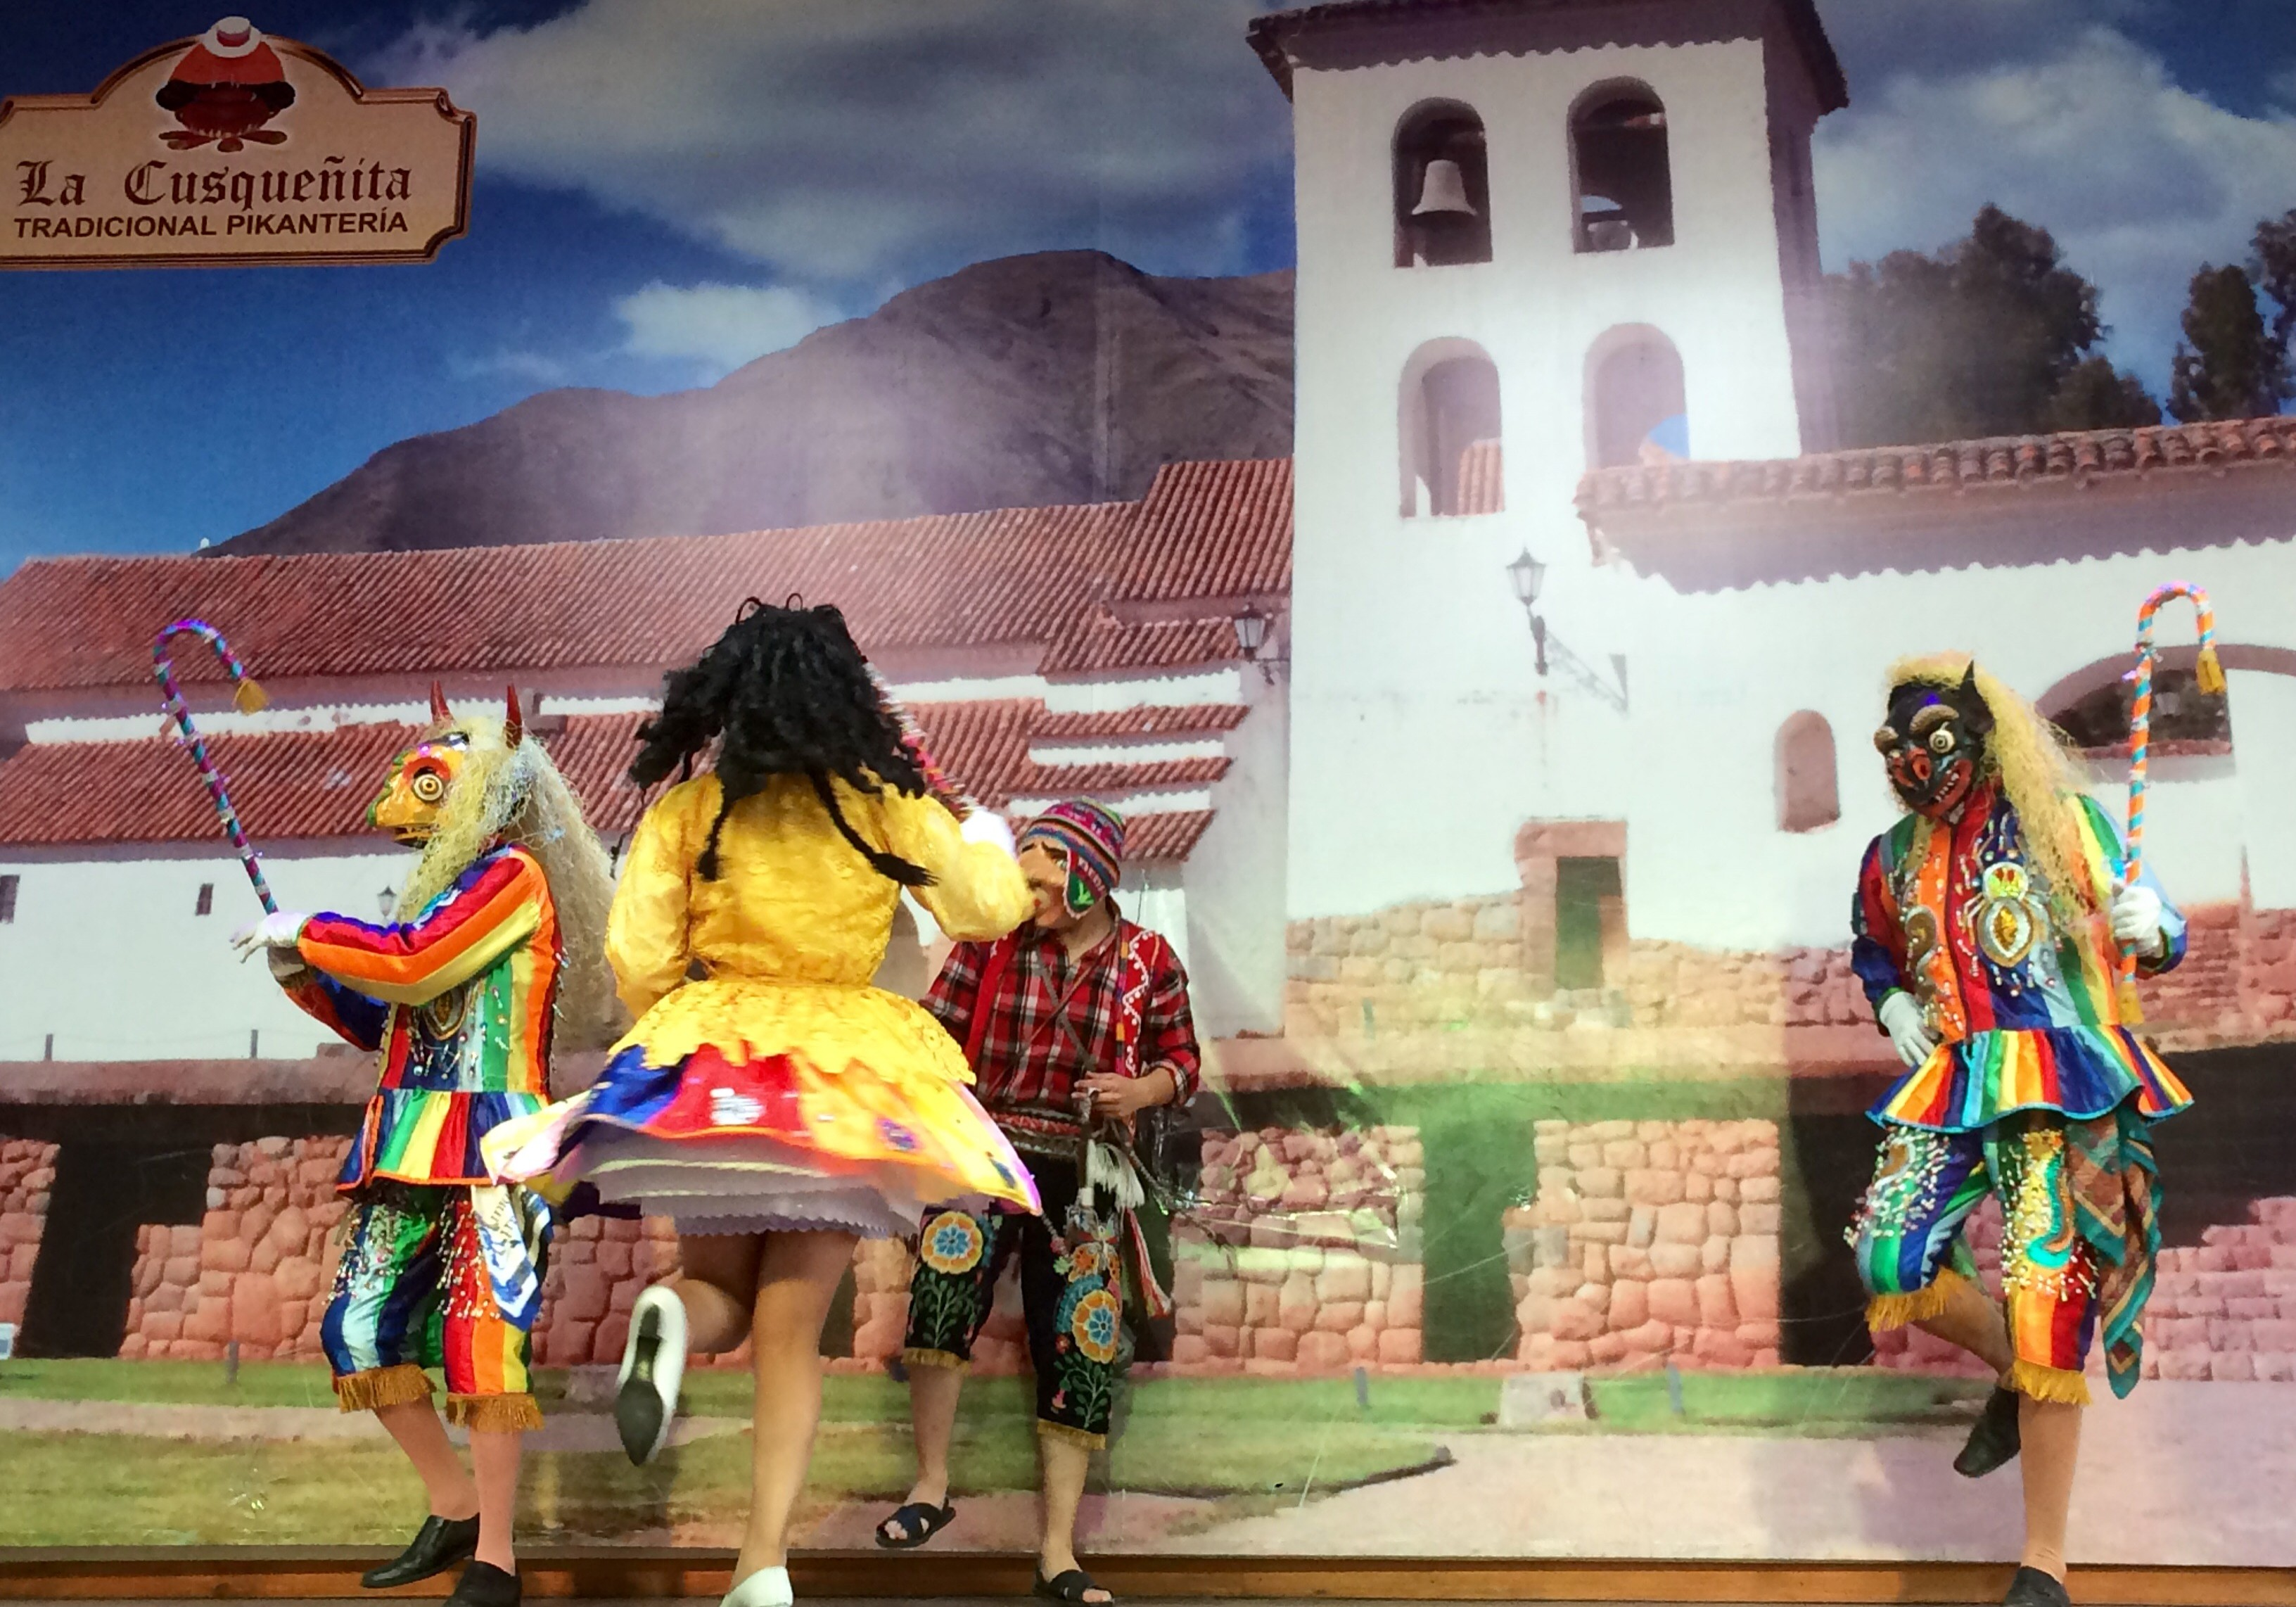 lunch with a side of traditional Peruvian entertainment